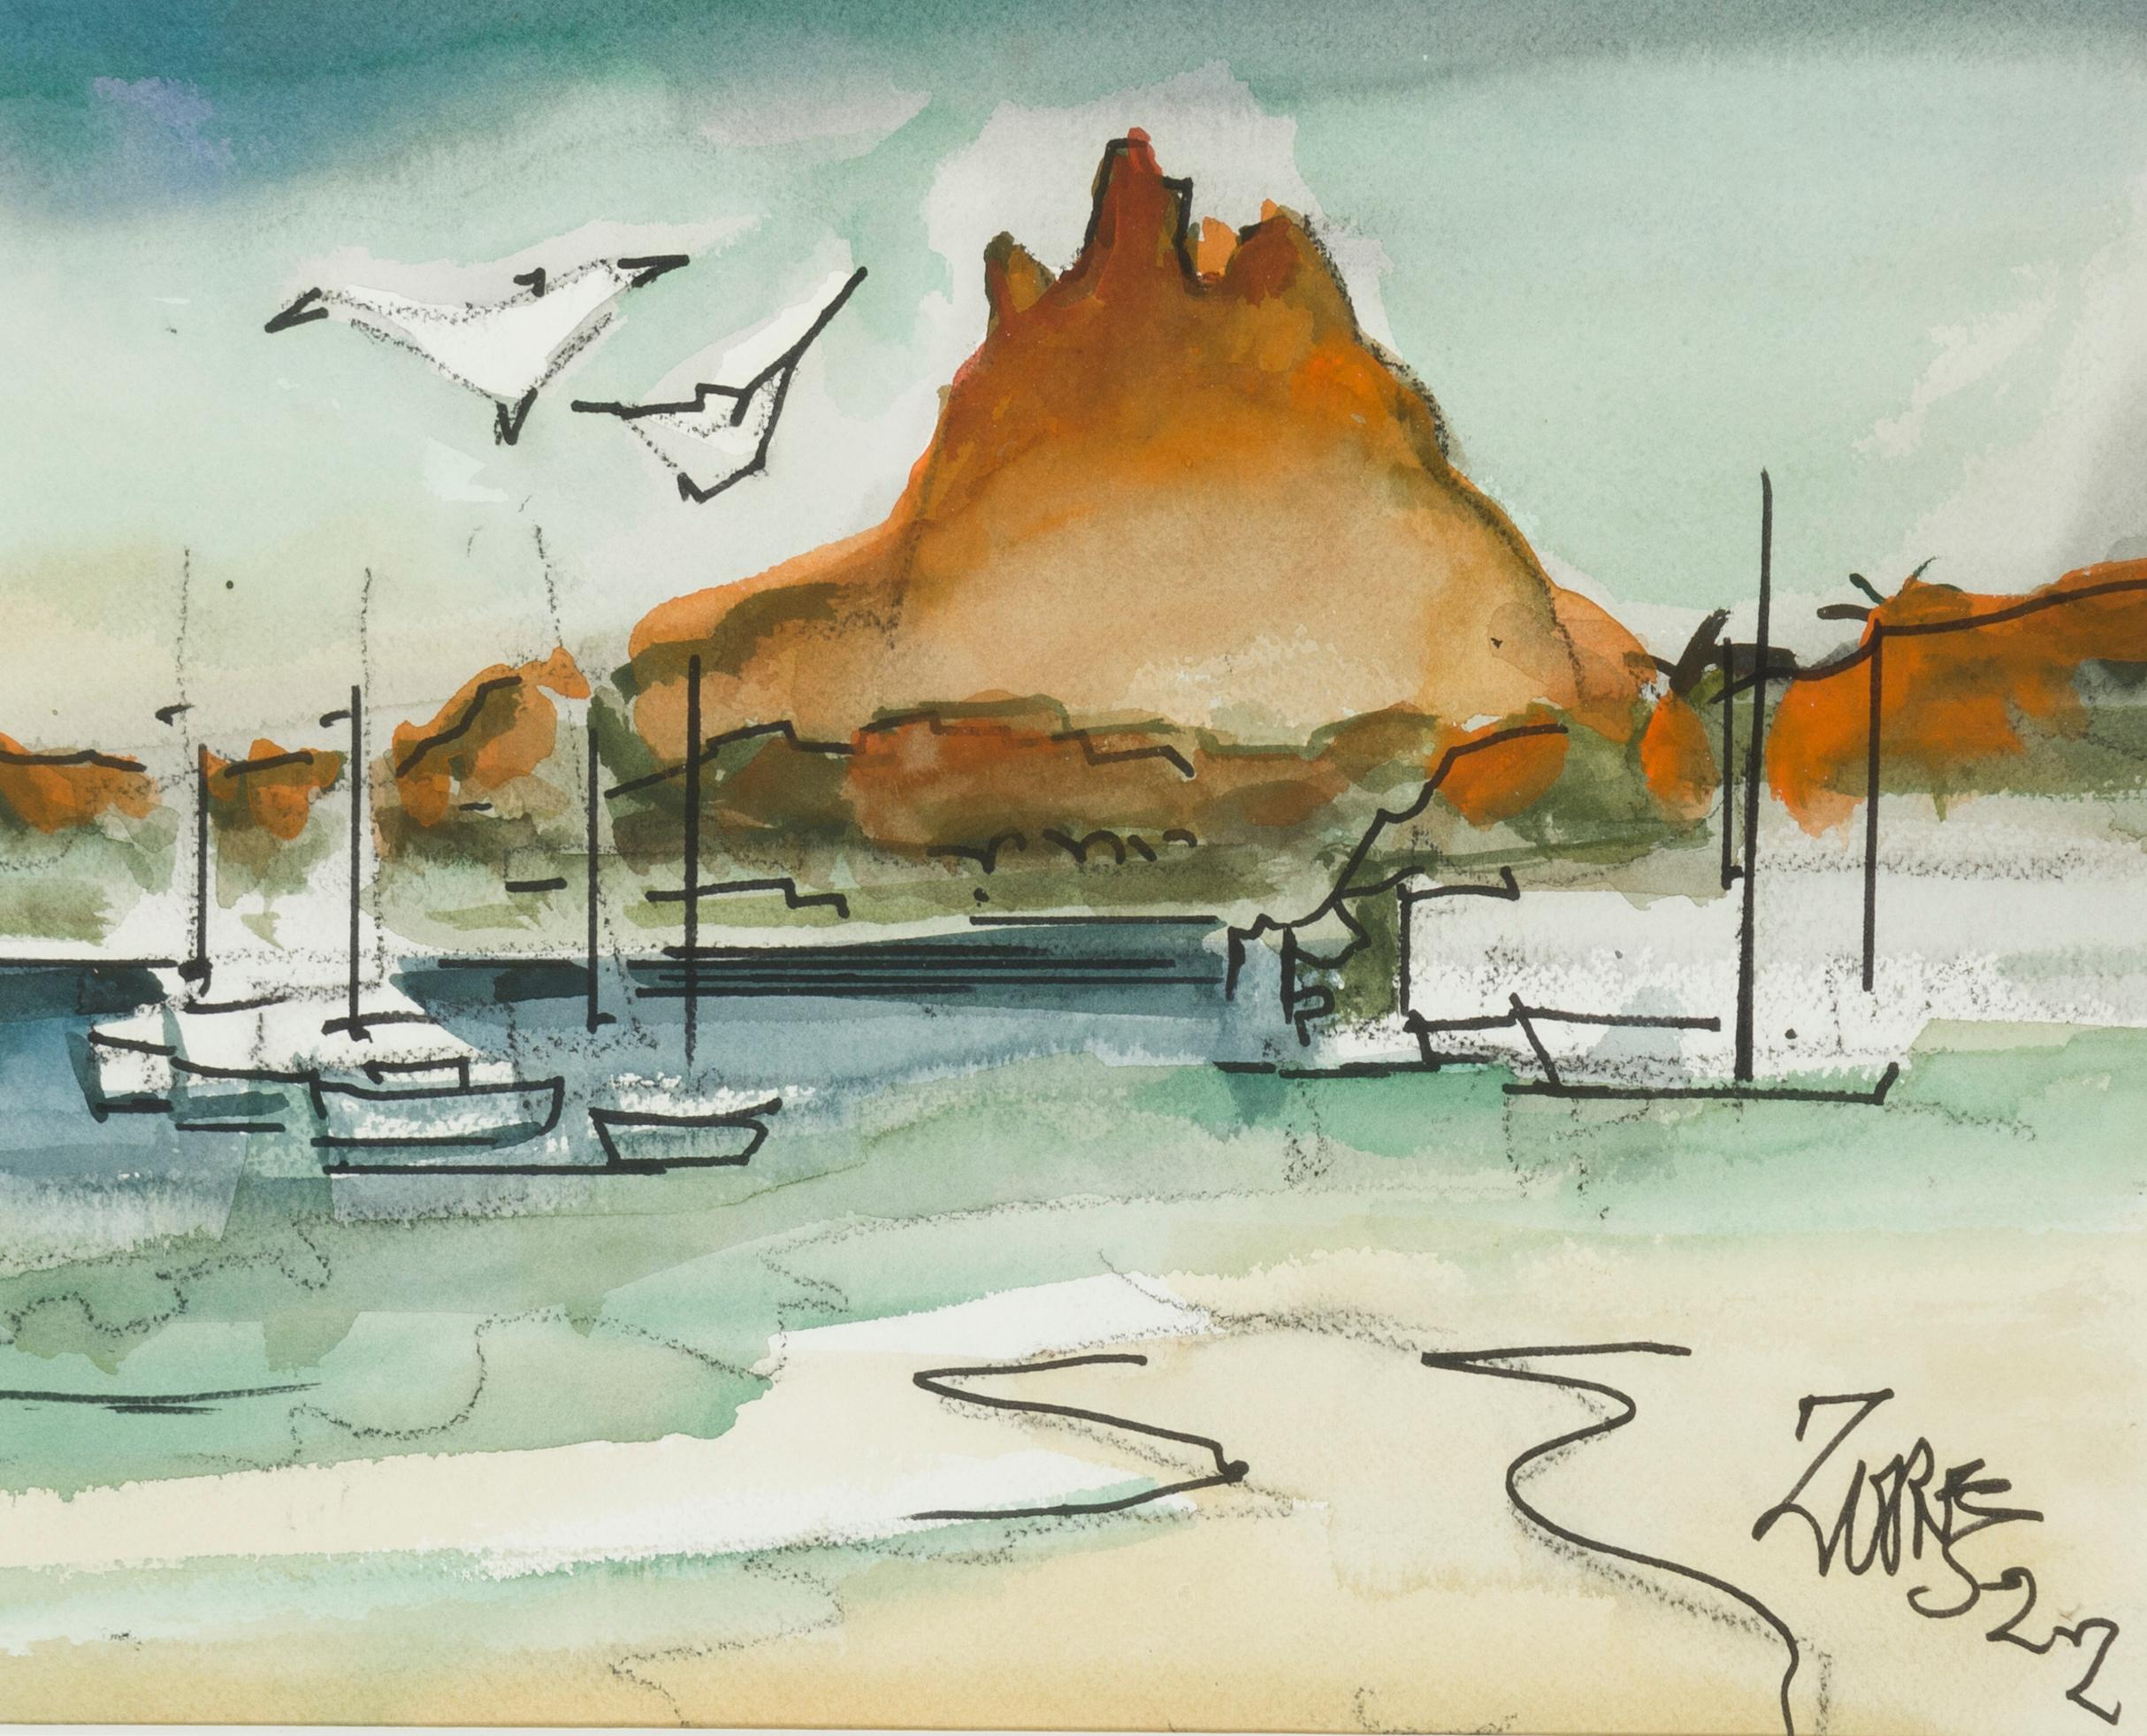 """Milford Zornes NA, (1908-2008 Claremont, CA), """"San Carlos,"""" 2002, Watercolor on paper under glass, Sight: 11"""" H x 14"""" W"""